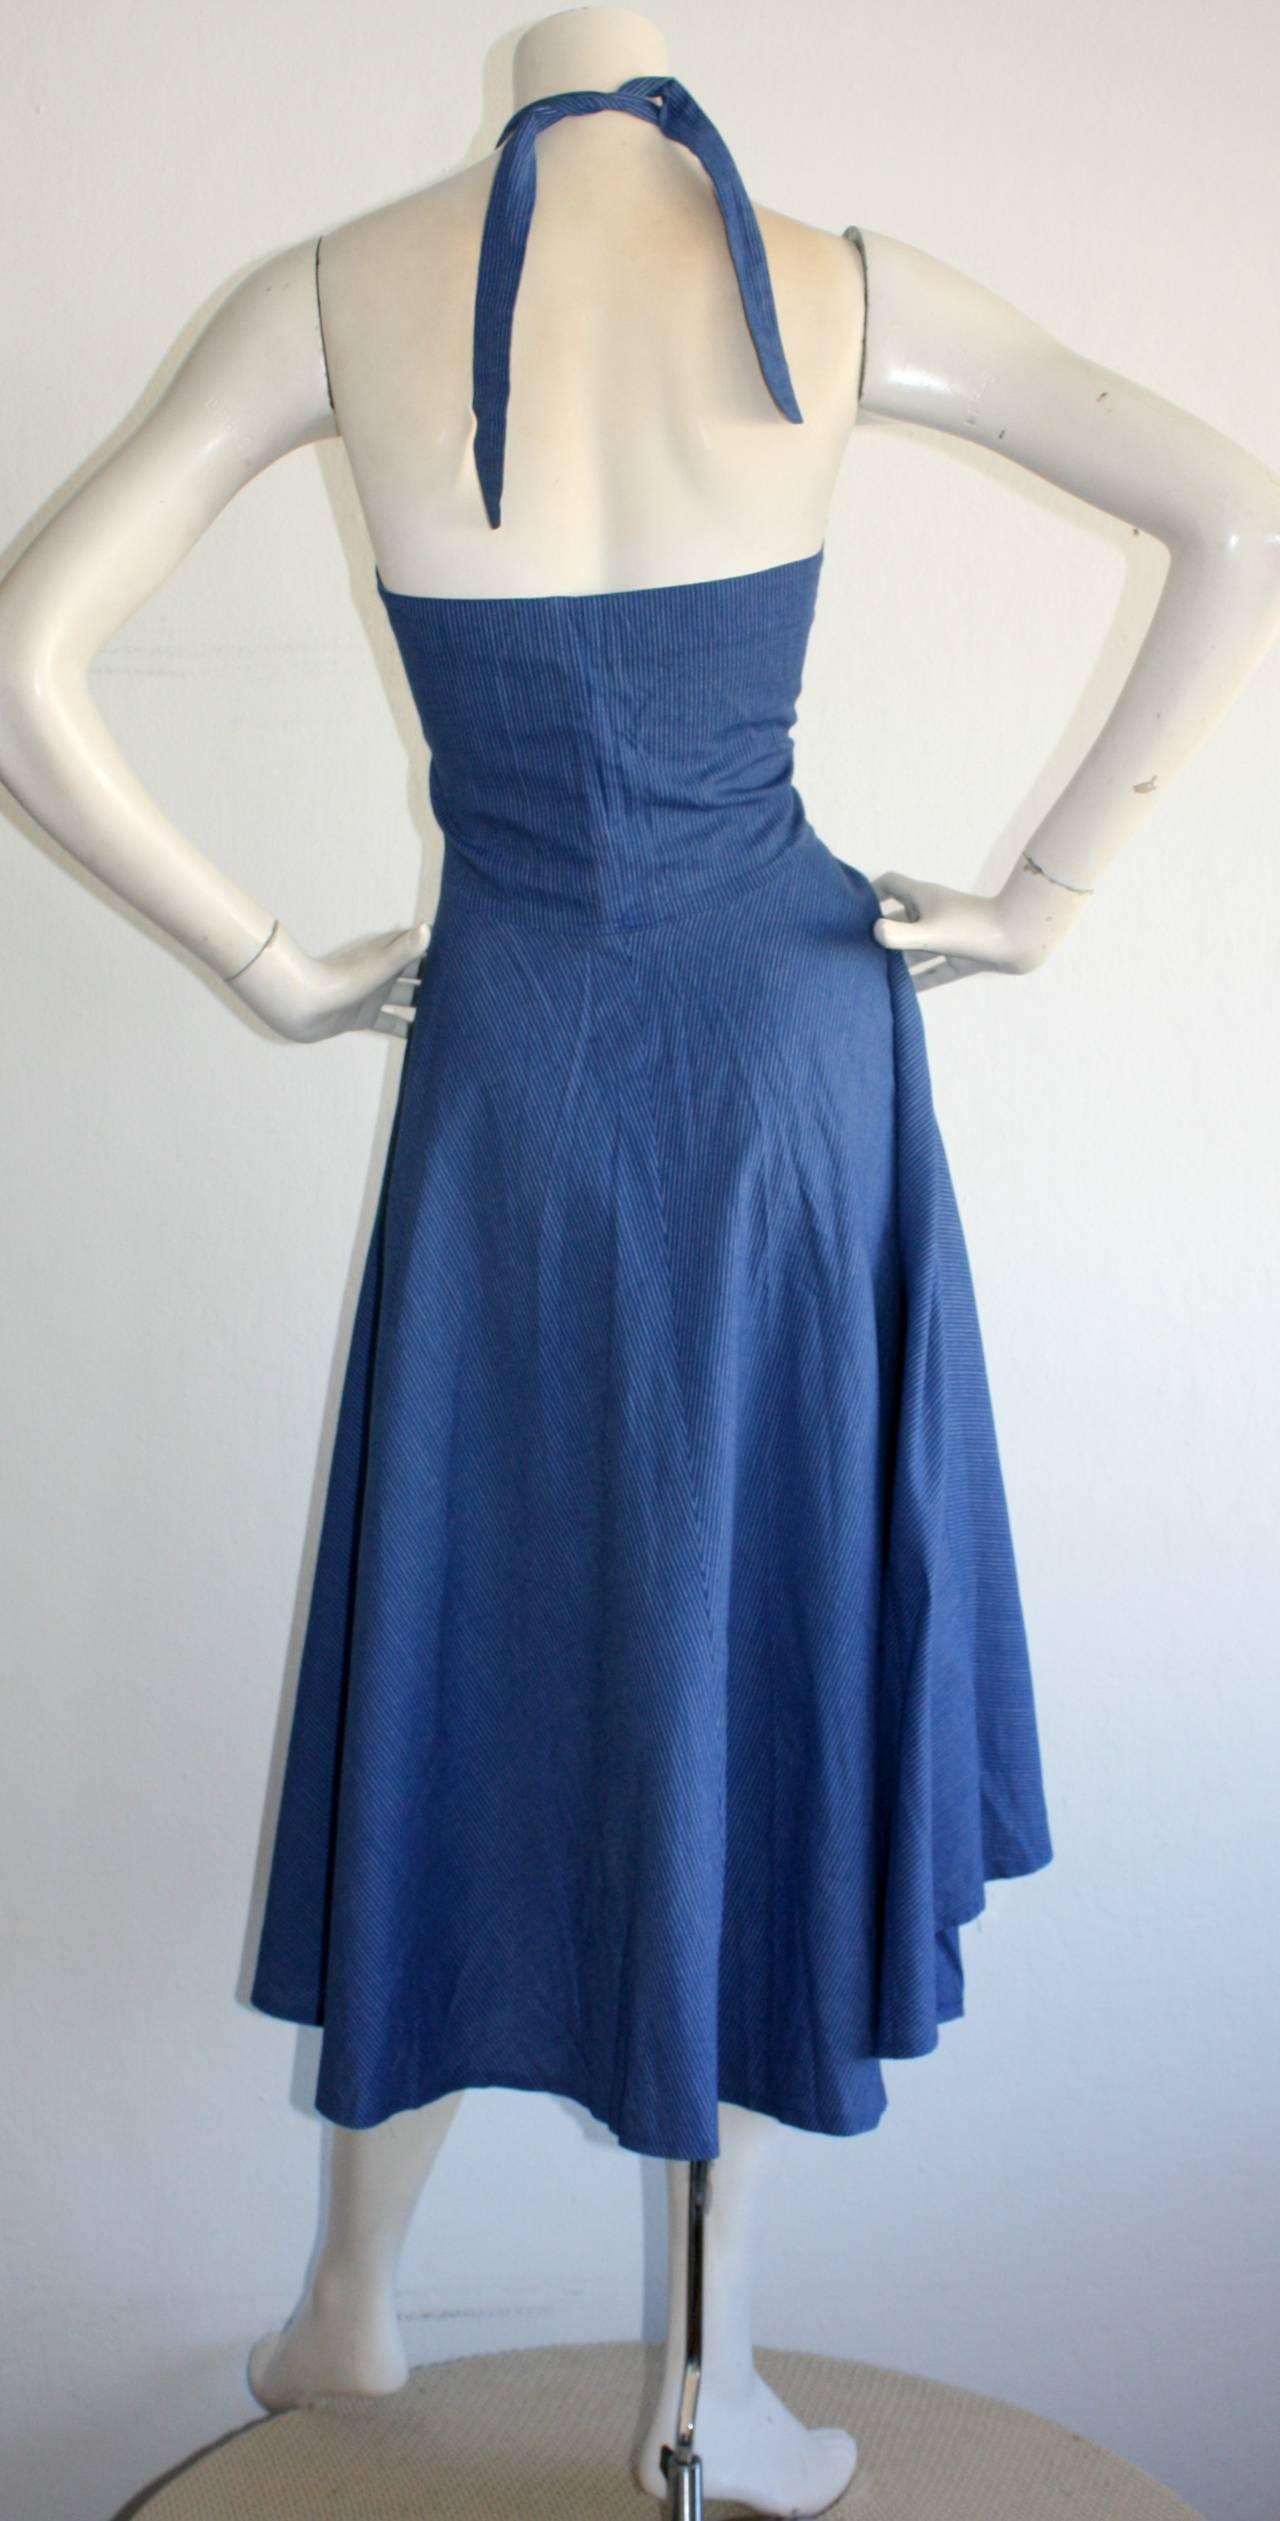 Vintage Guy Laroche Blue Striped Cotton Halter Rockabilly Sun Dress 4